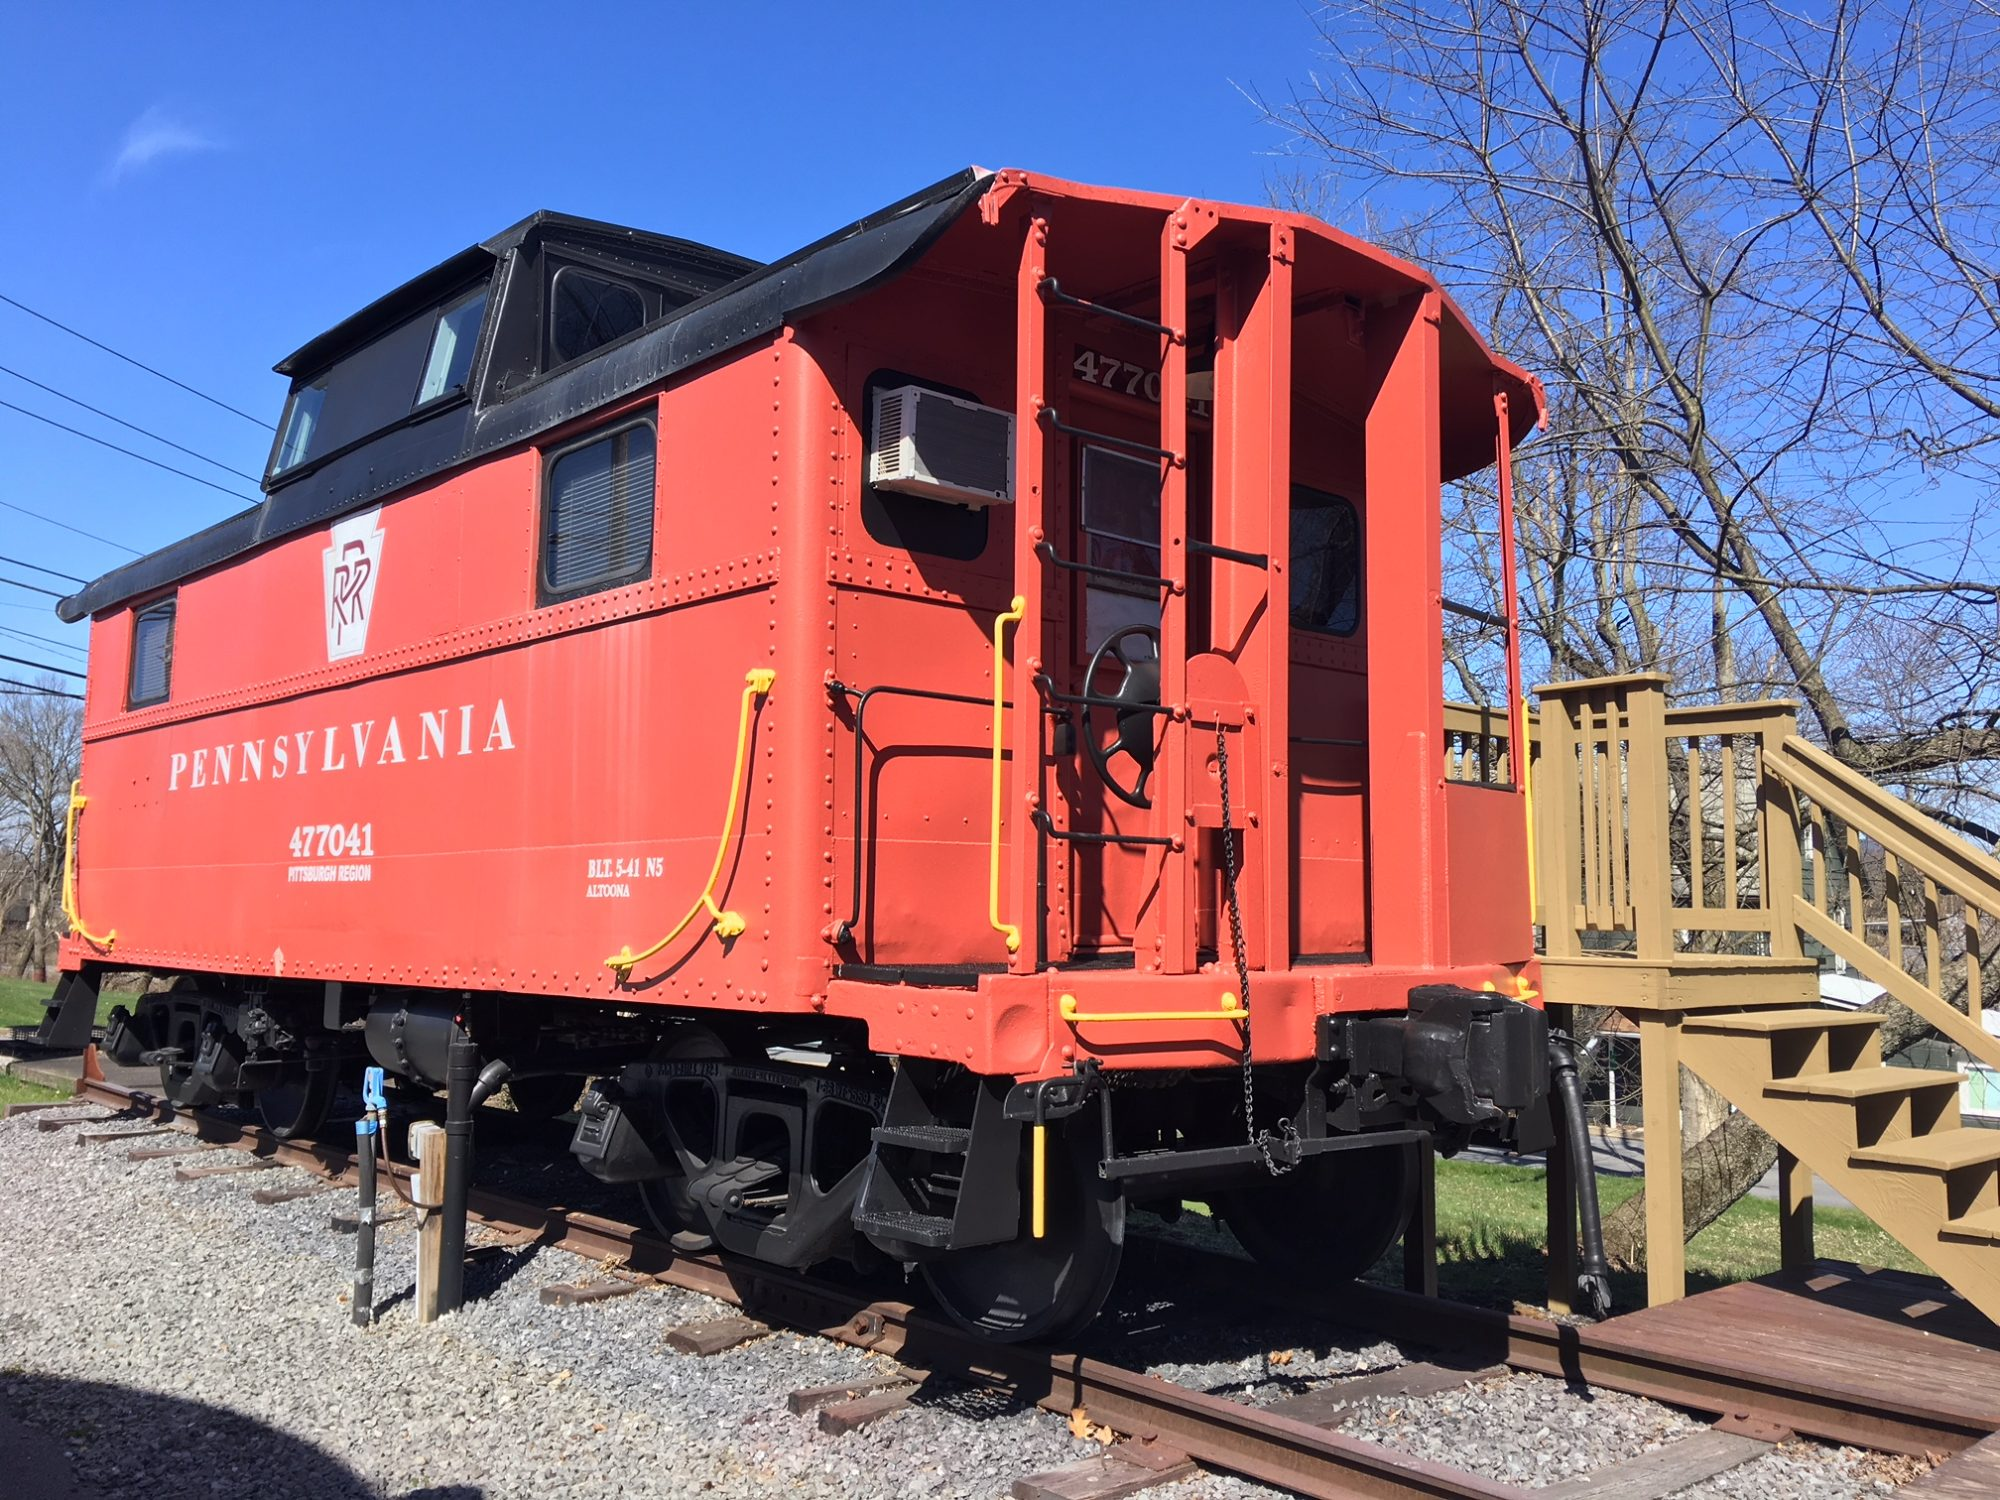 1941 Restored Vintage Caboose in Lock Haven, Pennsylvania